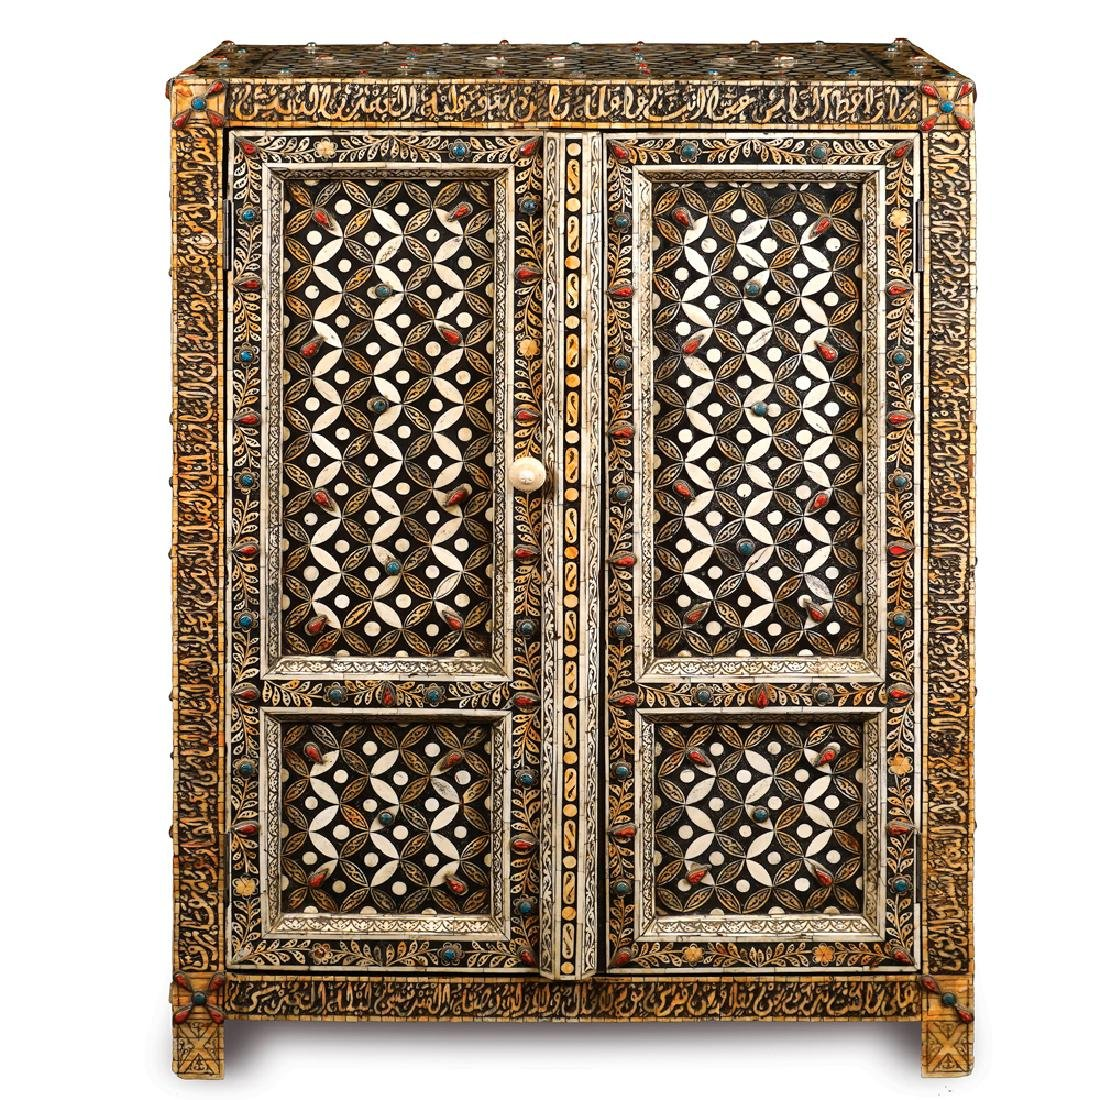 An ebonized wooden sideboard Oriental manifacture 20th